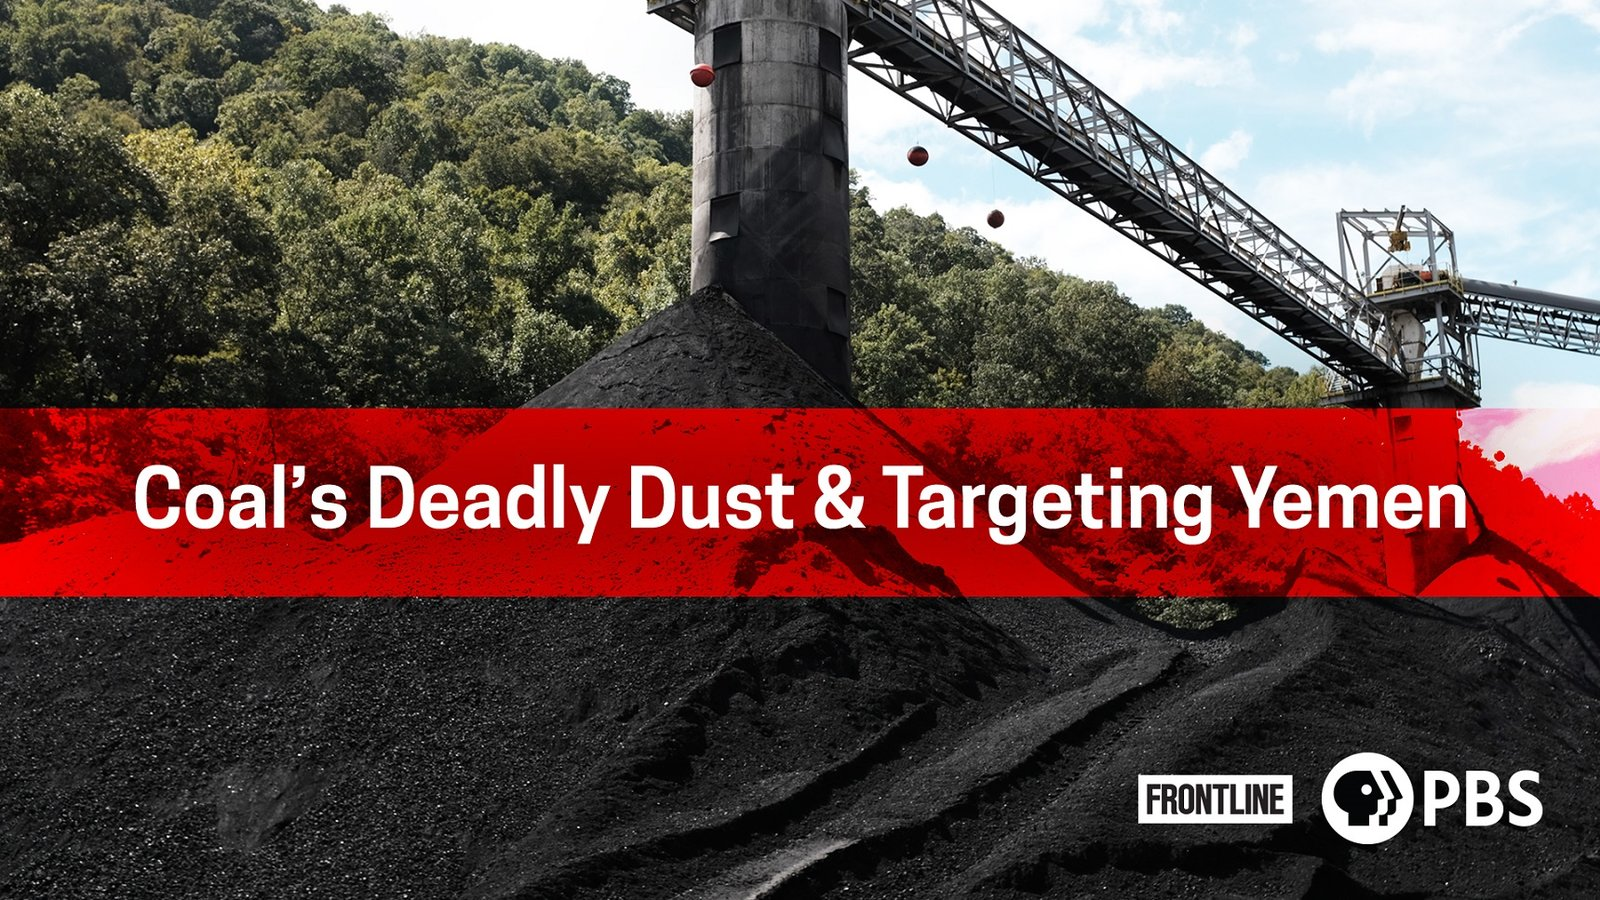 Forntline: Coal's Deadly Dust / Targeting Yemen